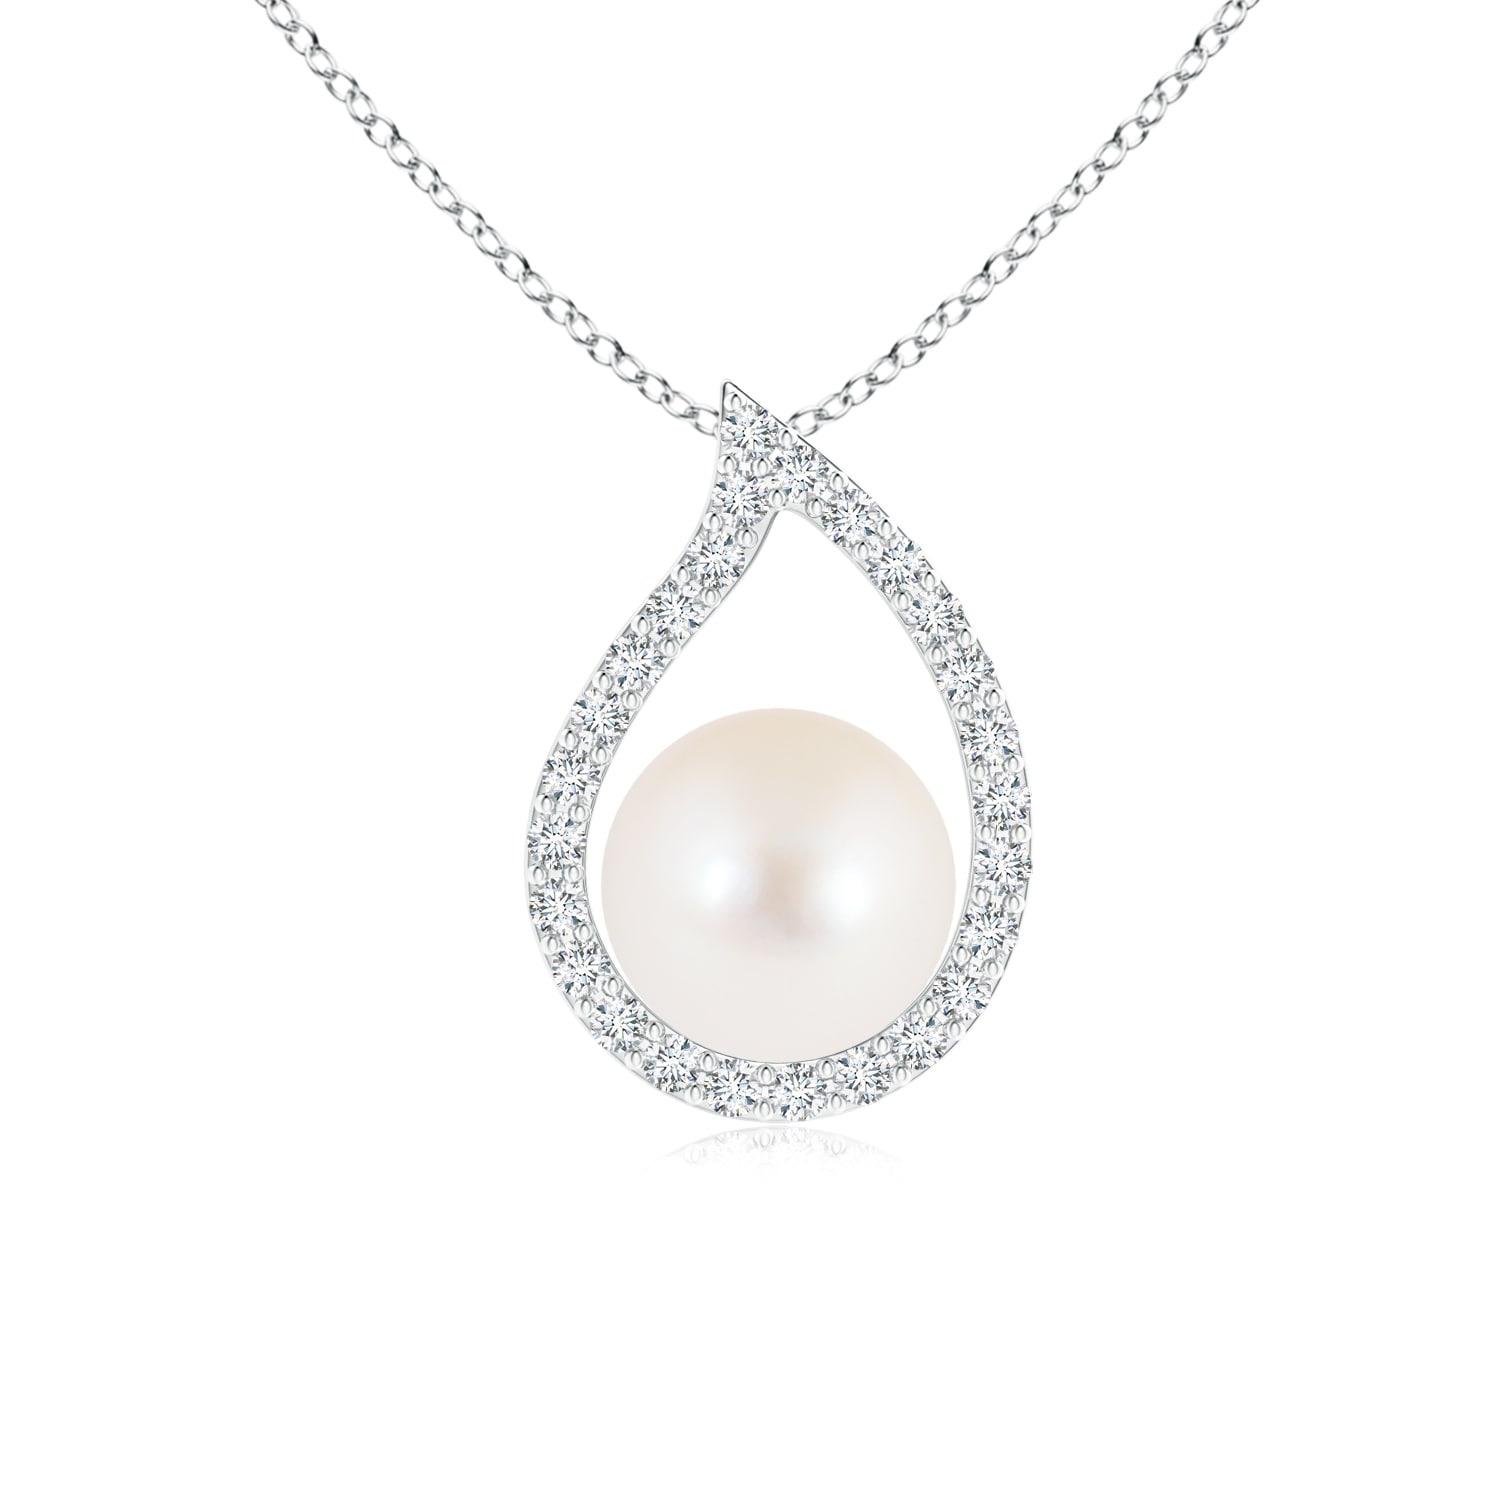 June Birthstone Paisley Framed FreshWater Cultured Pearl Pendant Necklace for Women with Diamonds in Silver (Pearl Size... by Angara.com